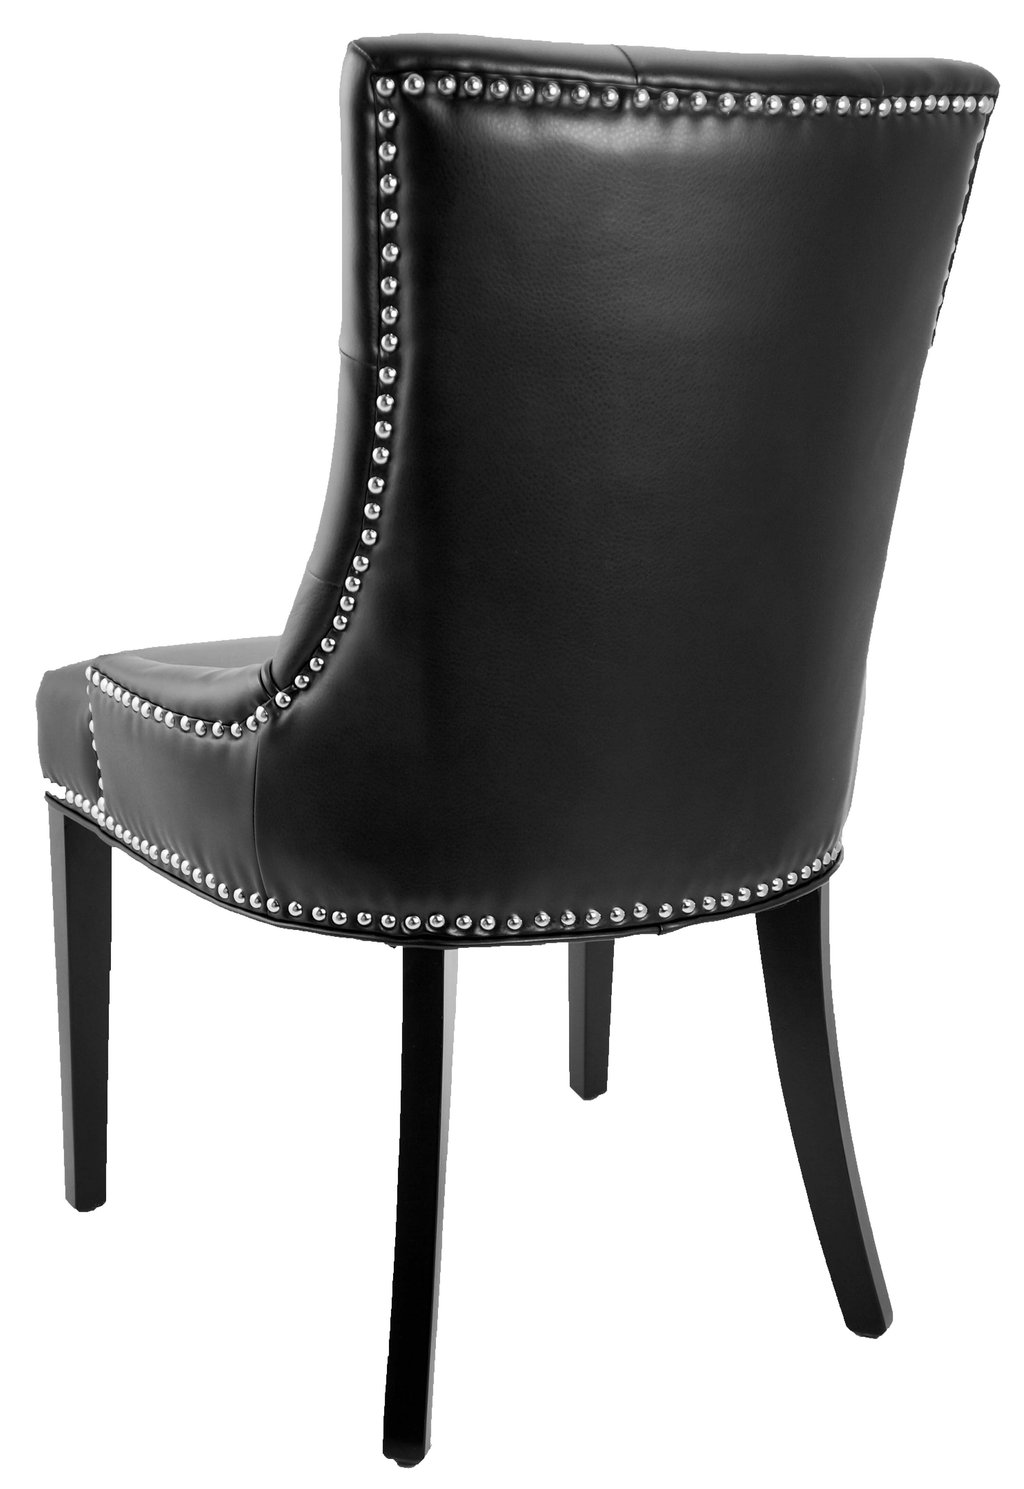 Clearance Matte Black Accent Tufted Leather Dining Ideas Kitchen Counter Stools